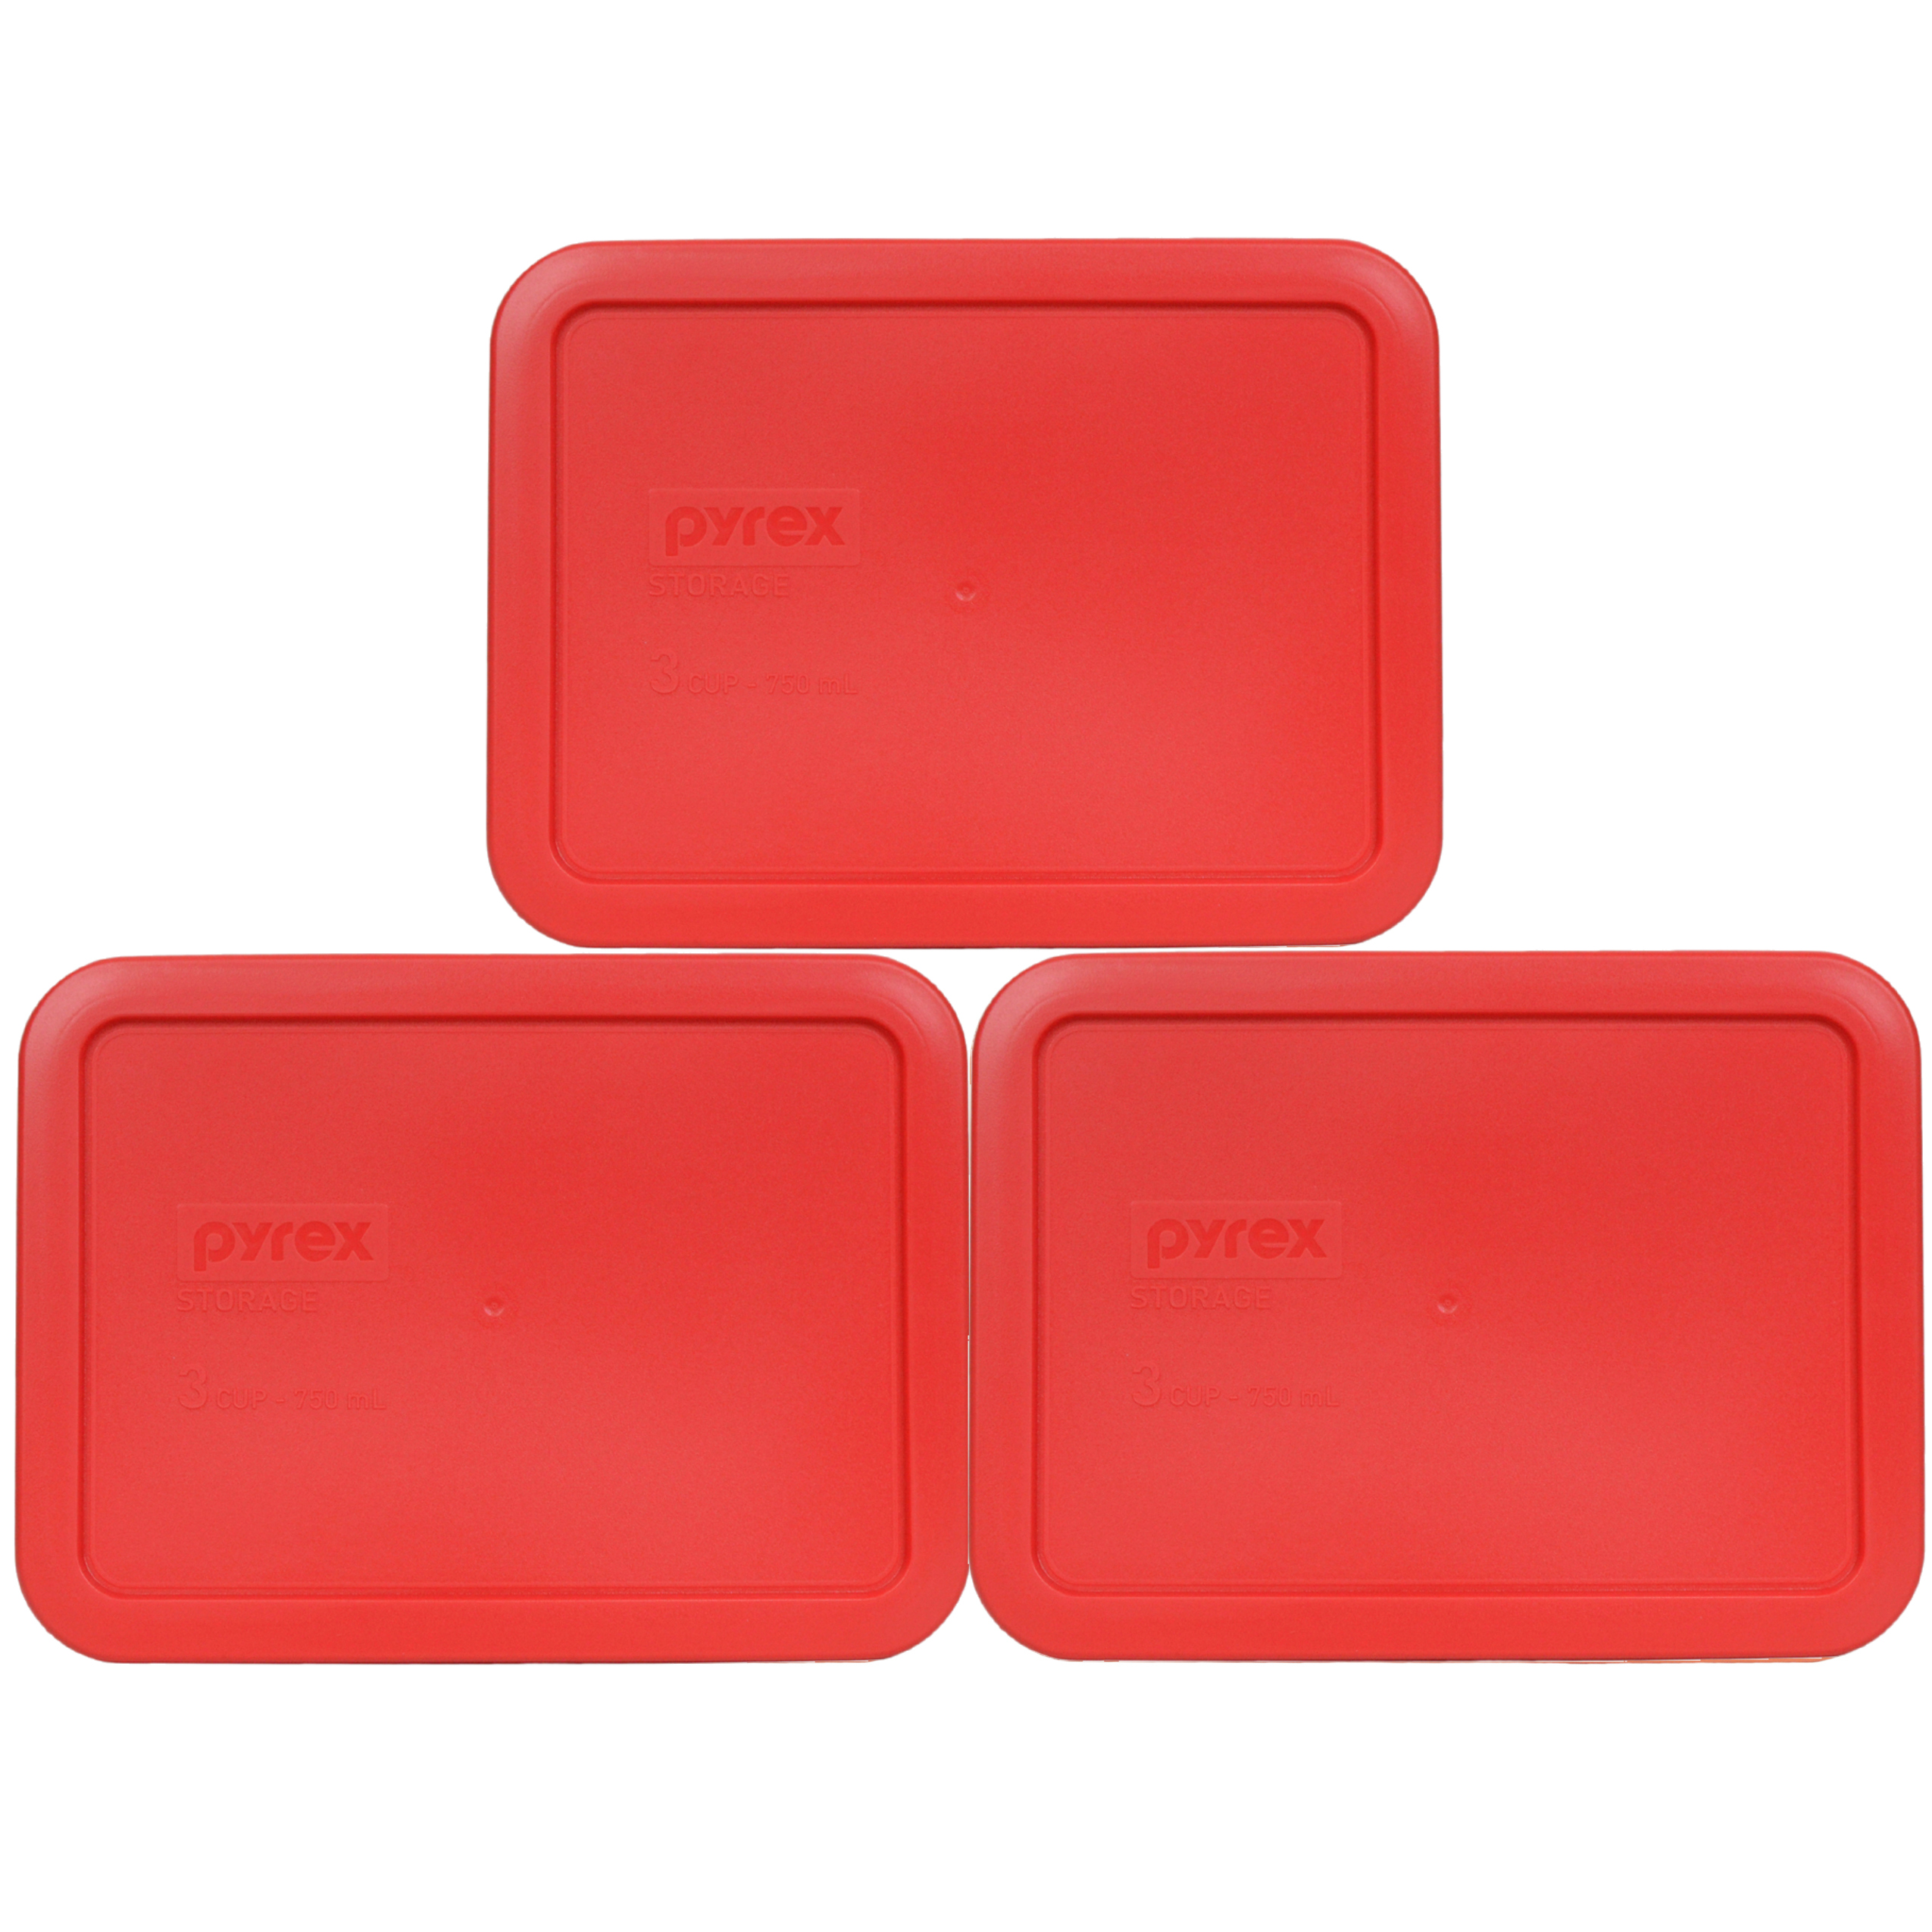 Pyrex Replacement Lid 7210-PC Bahama Sunset Rectangle Cover (3-Pack) for Pyrex 7210 3-Cup Dish (Sold Separately)